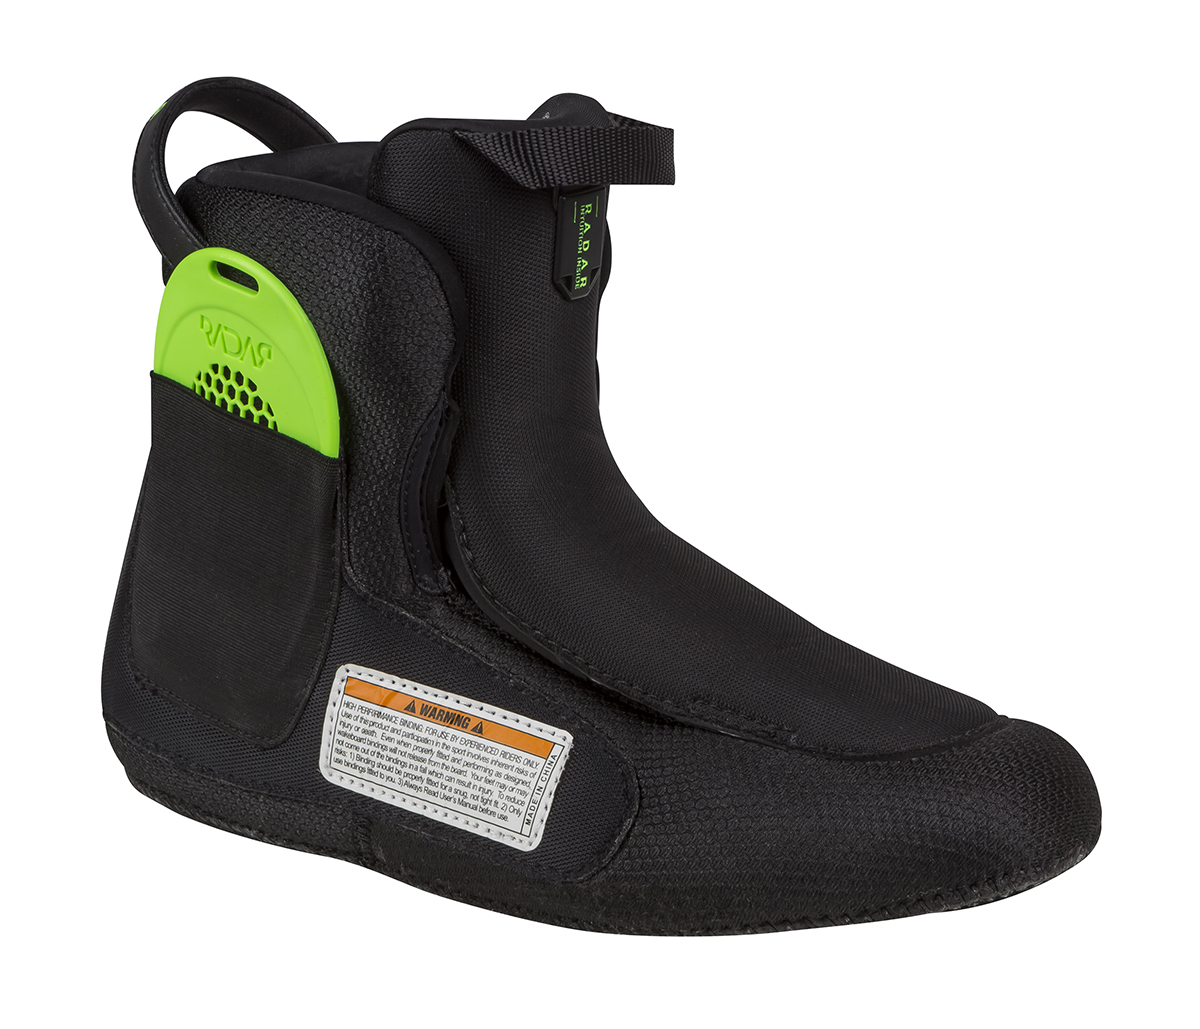 VAPOR BOOT LINER W/ INSOLE - LEFT RADAR 2019